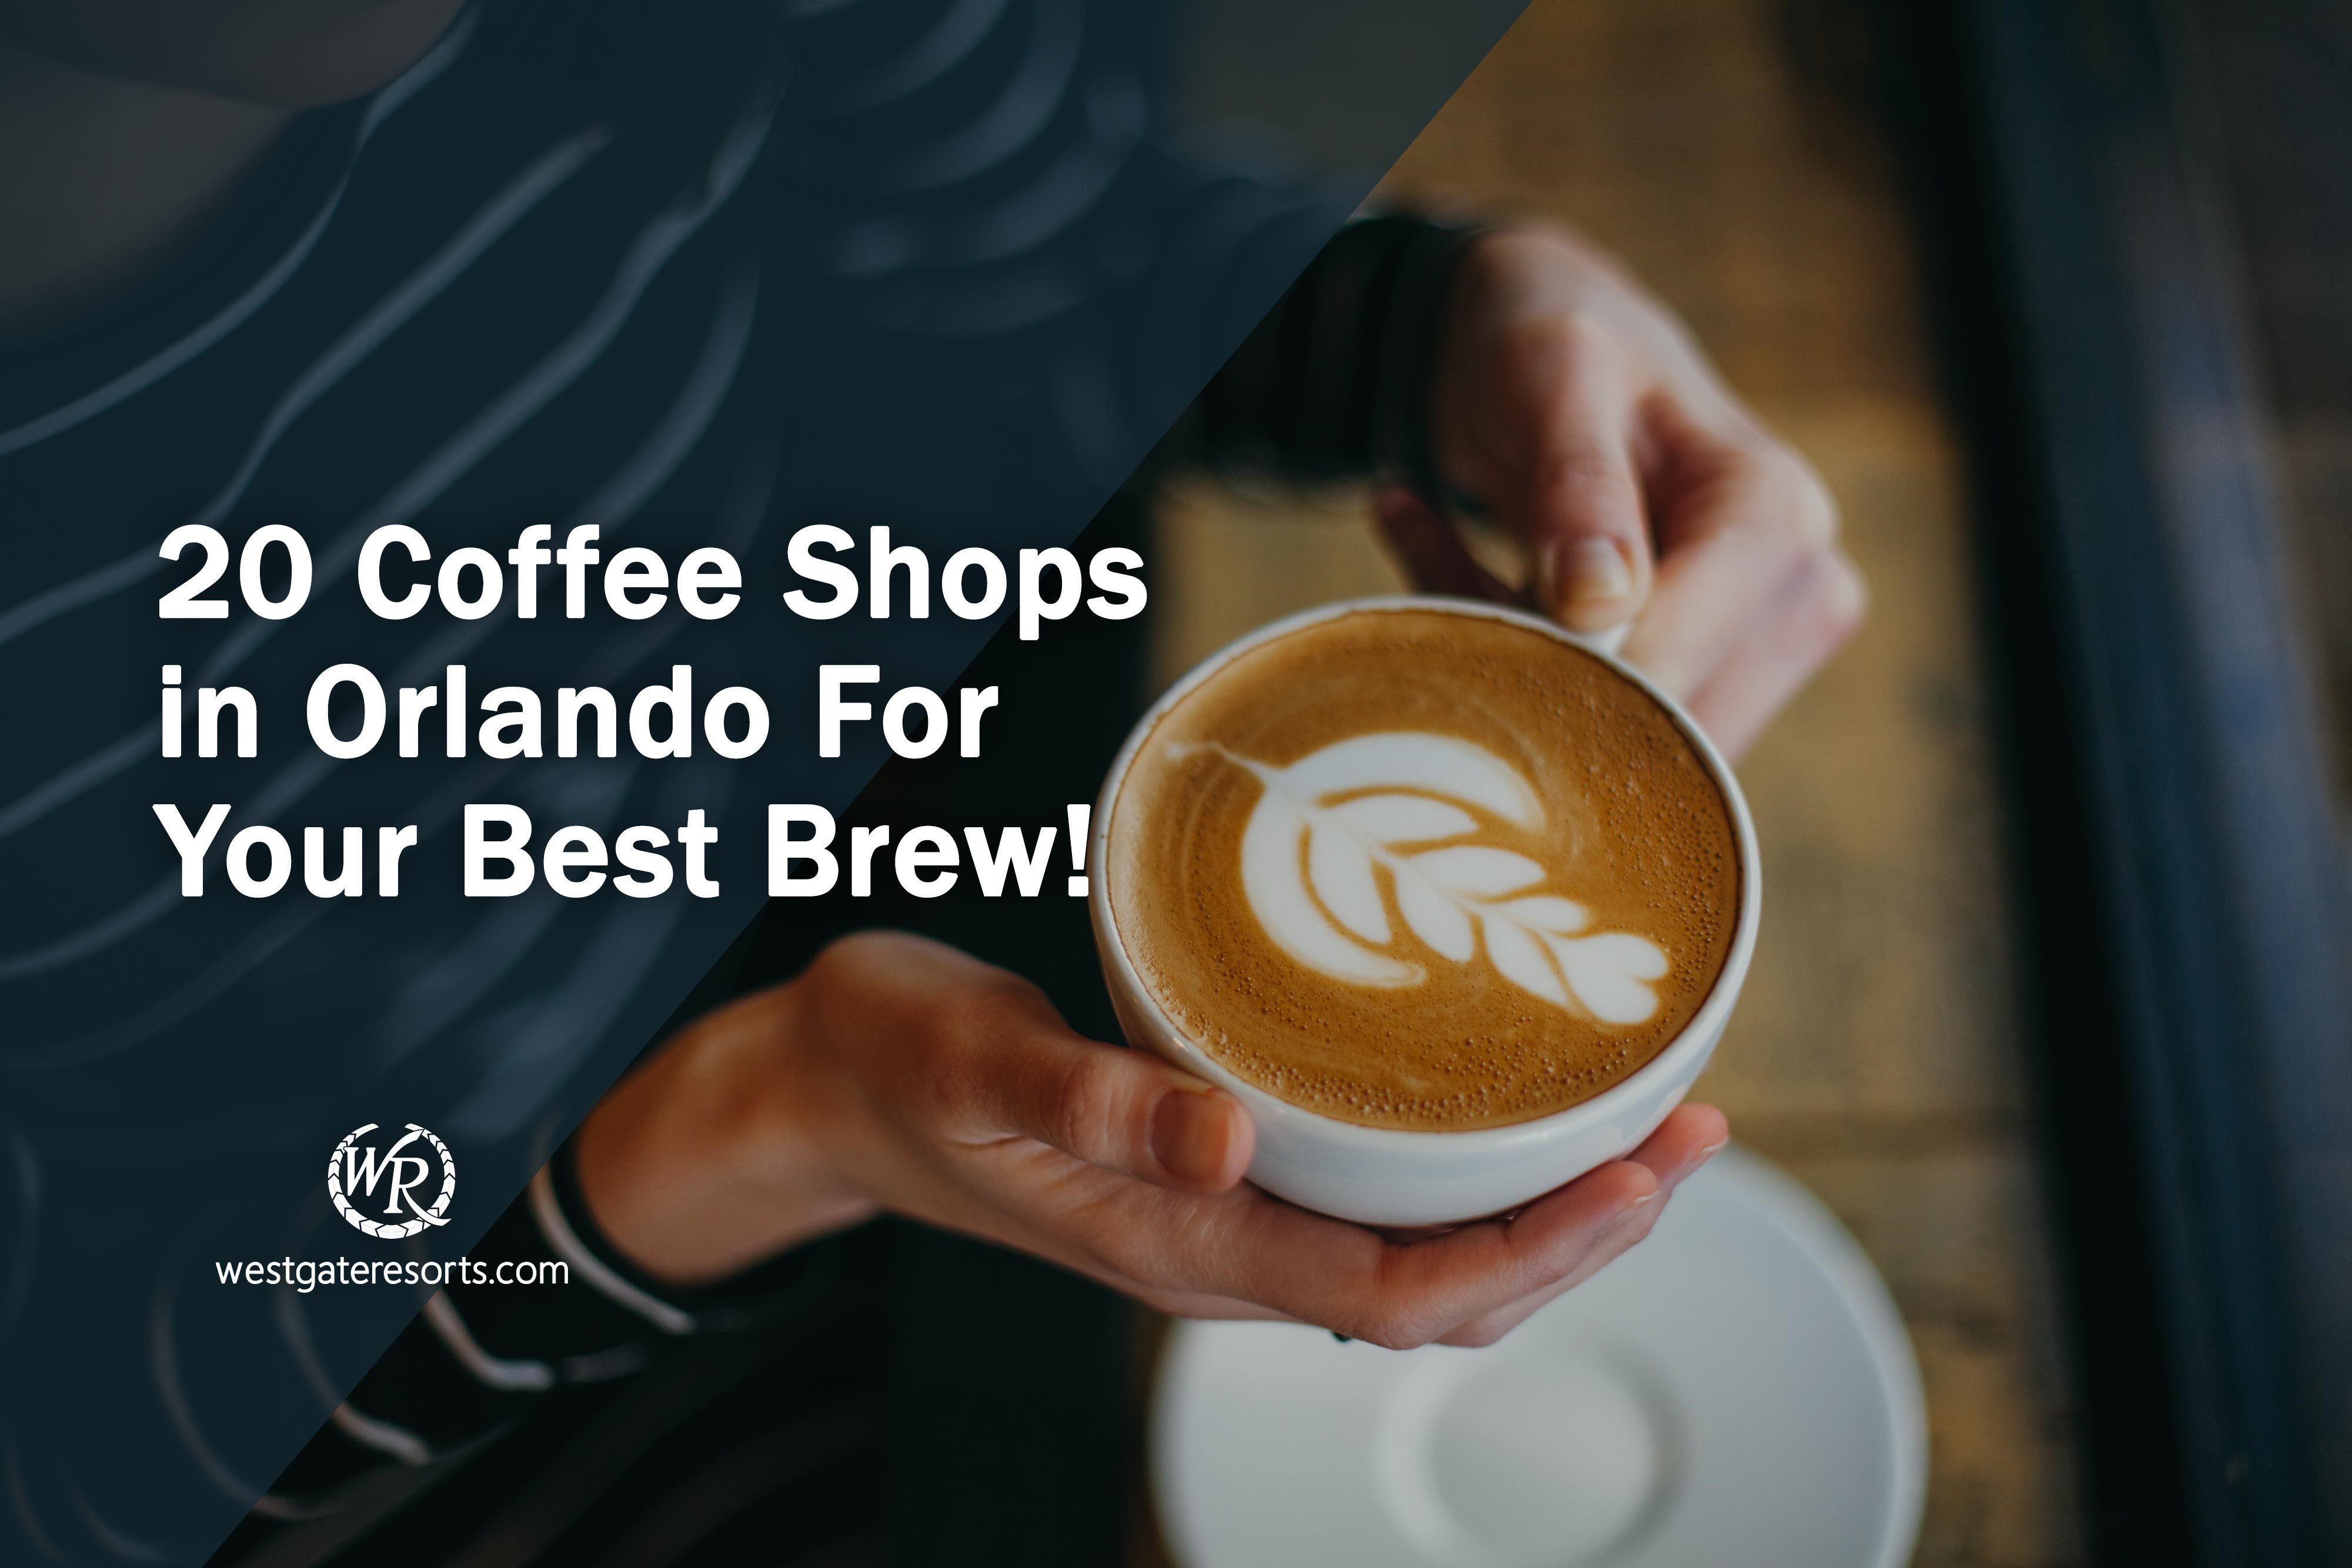 20 Coffee Shops in Orlando For Your Best Brew!